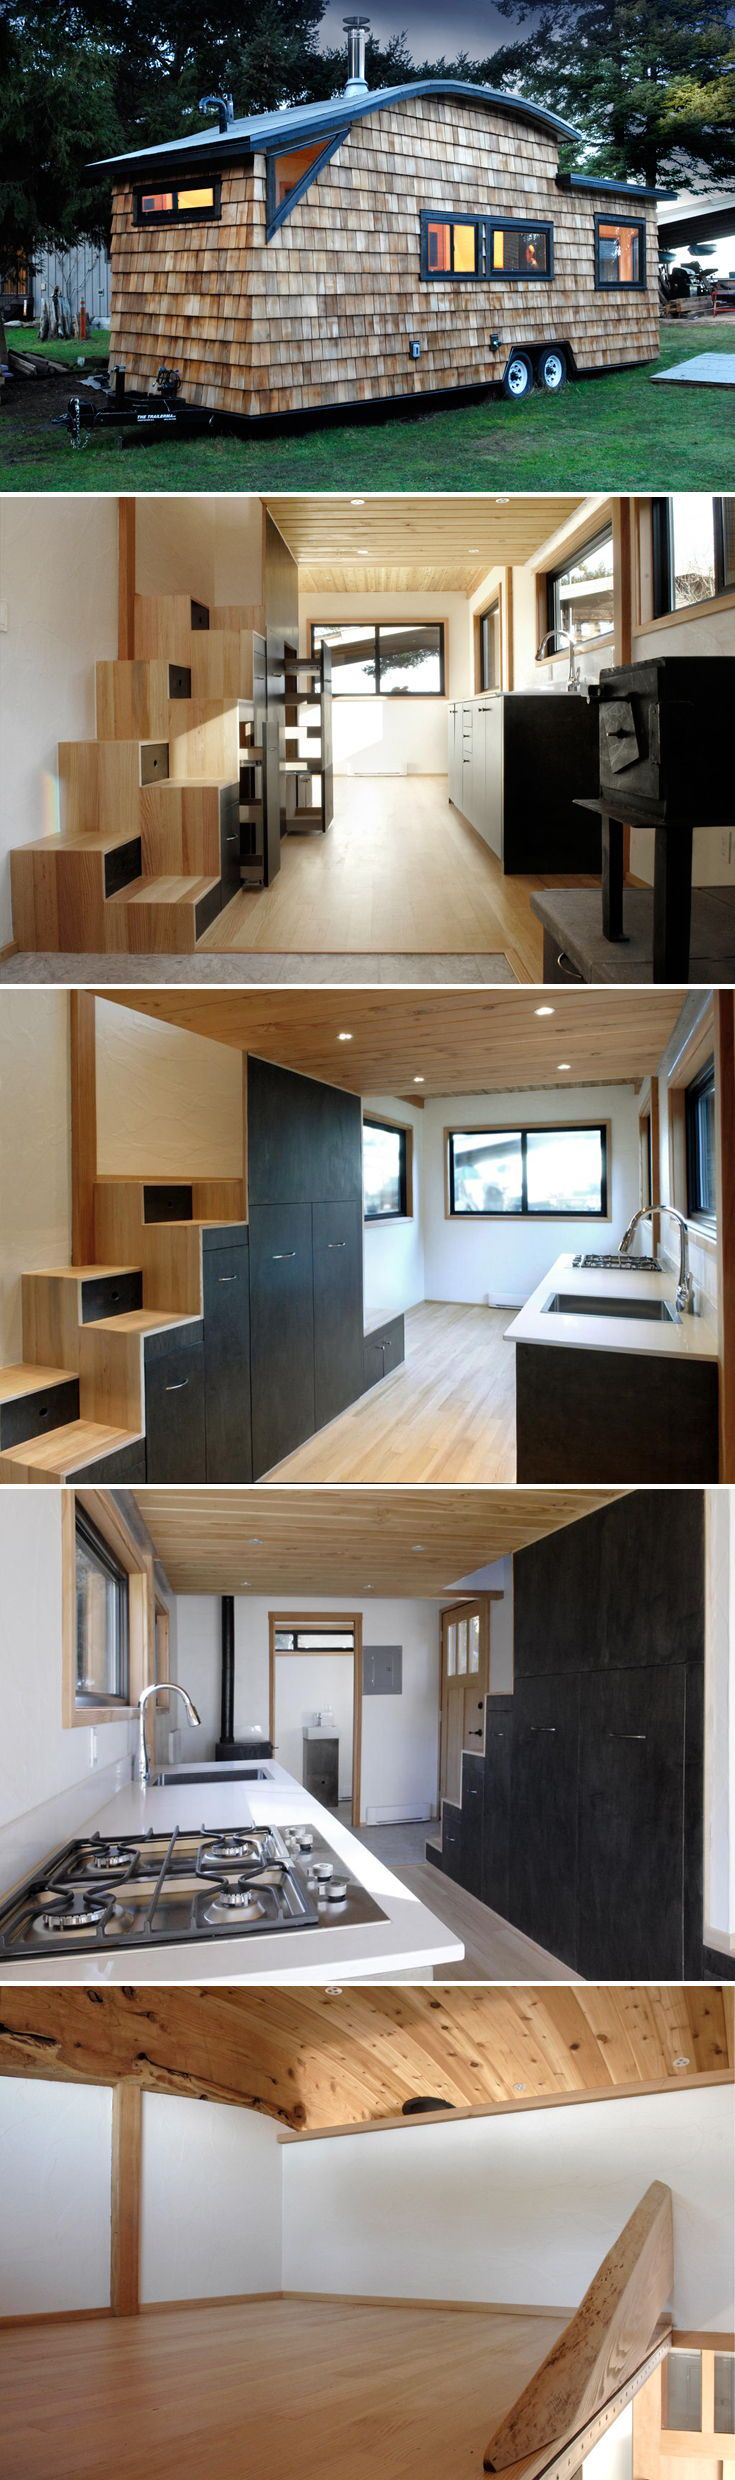 Curved micro home by structural spaces also best tiny house design images in rh pinterest